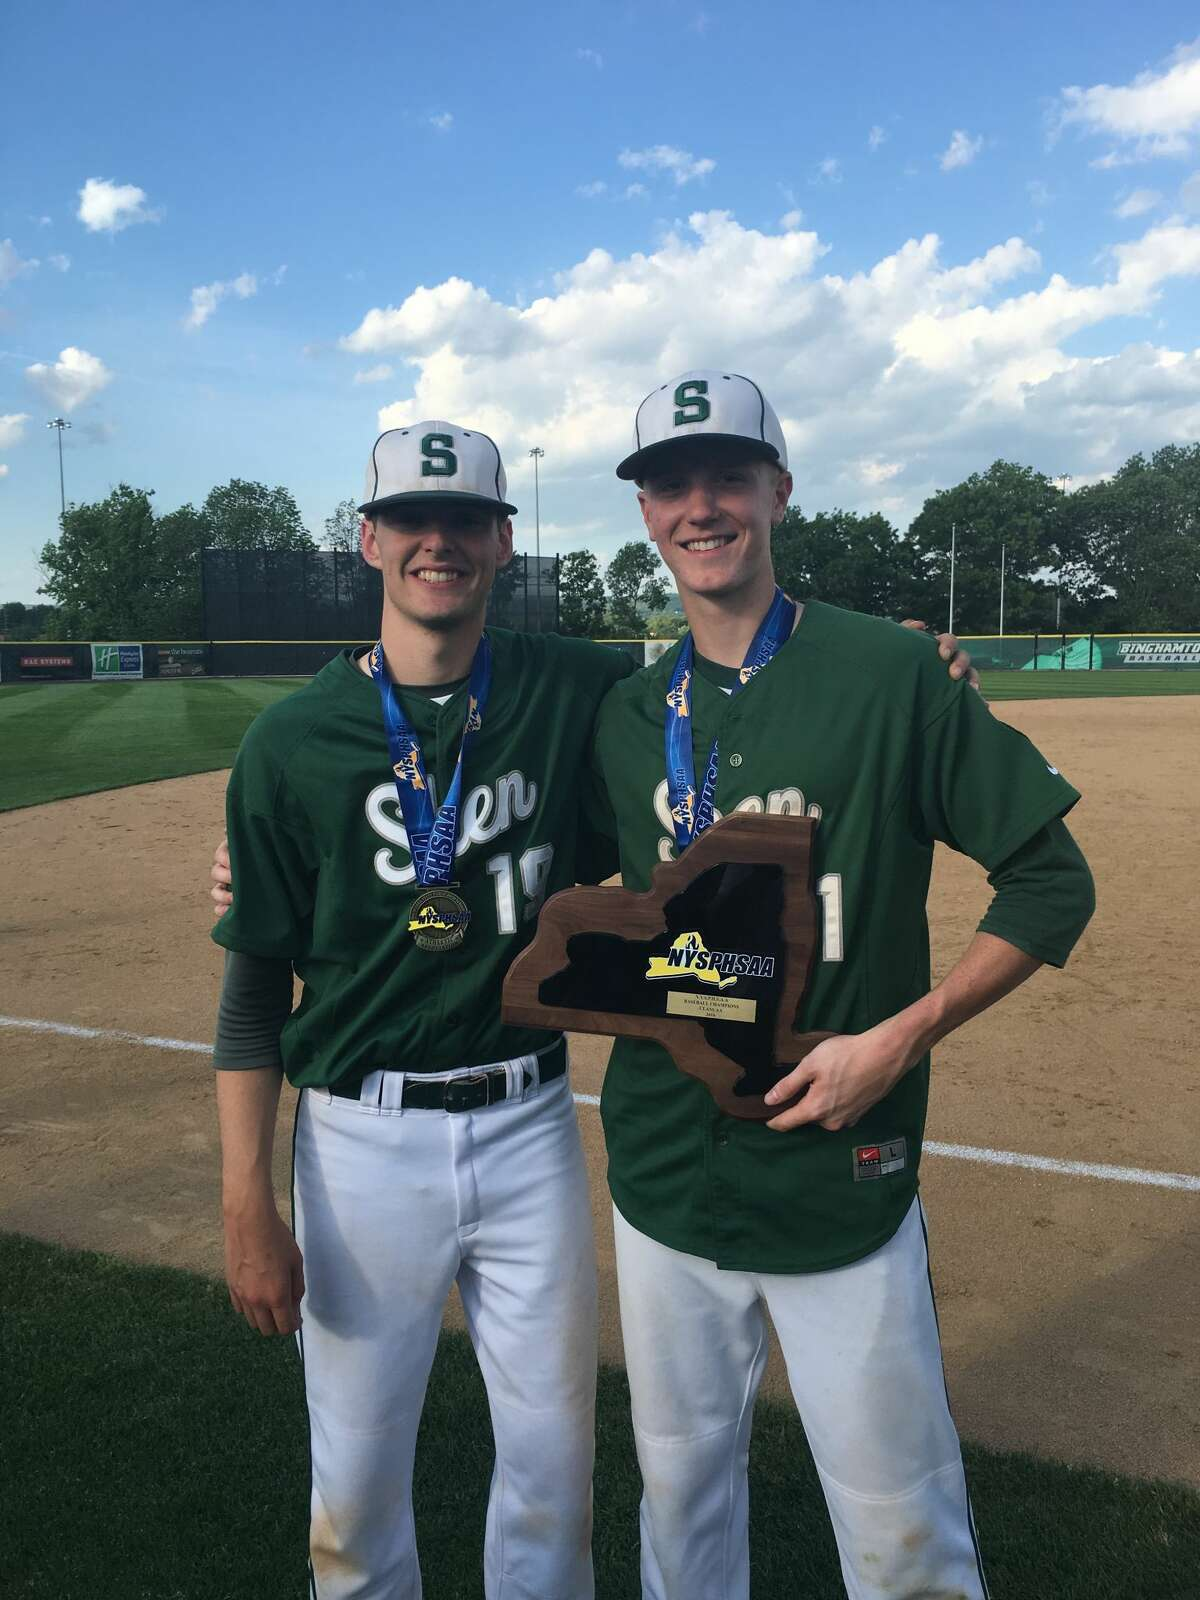 Photo of Ian Anderson (left) and Kevin Huerter (right) after winning a state baseball title at Shen in 2016. Courtesy of Kevin Huerter.